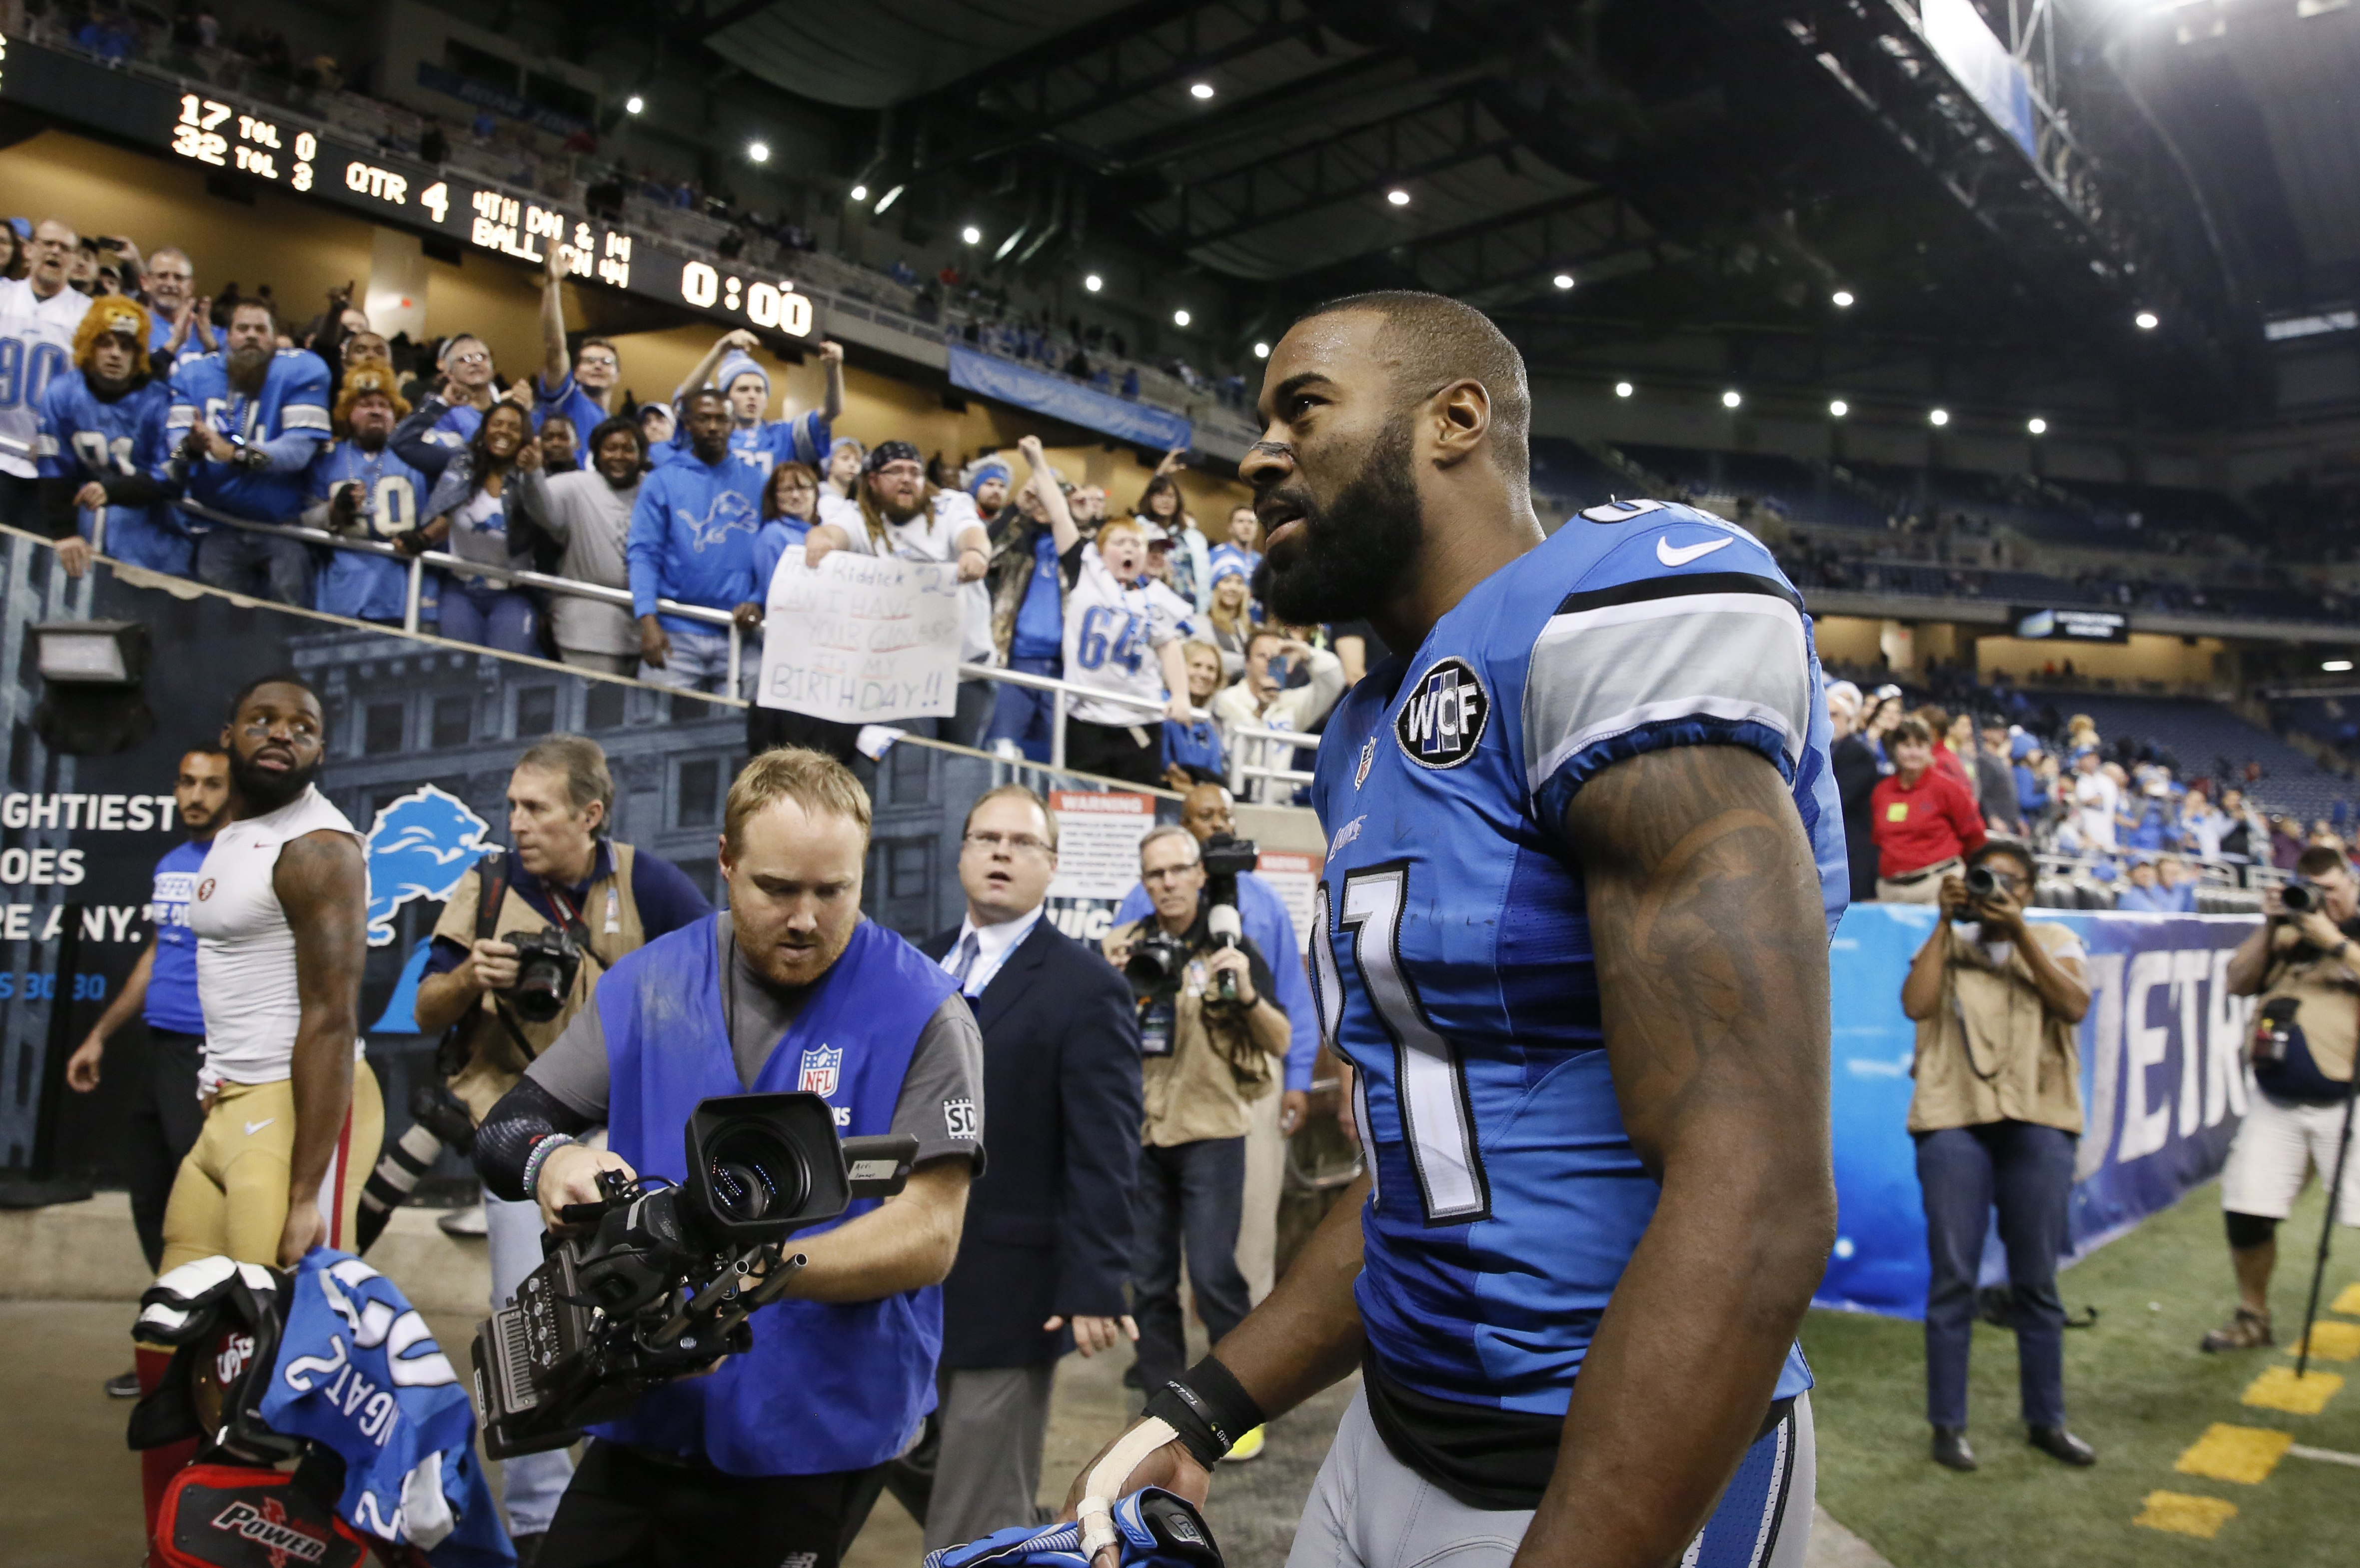 Detroit Lions wide receiver Calvin Johnson walks off the field after an NFL football game against the San Francisco 49ers, Sunday, Dec. 27, 2015, in Detroit. The Lions defeated the 49ers 32-17. (AP Photo/Rick Osentoski)